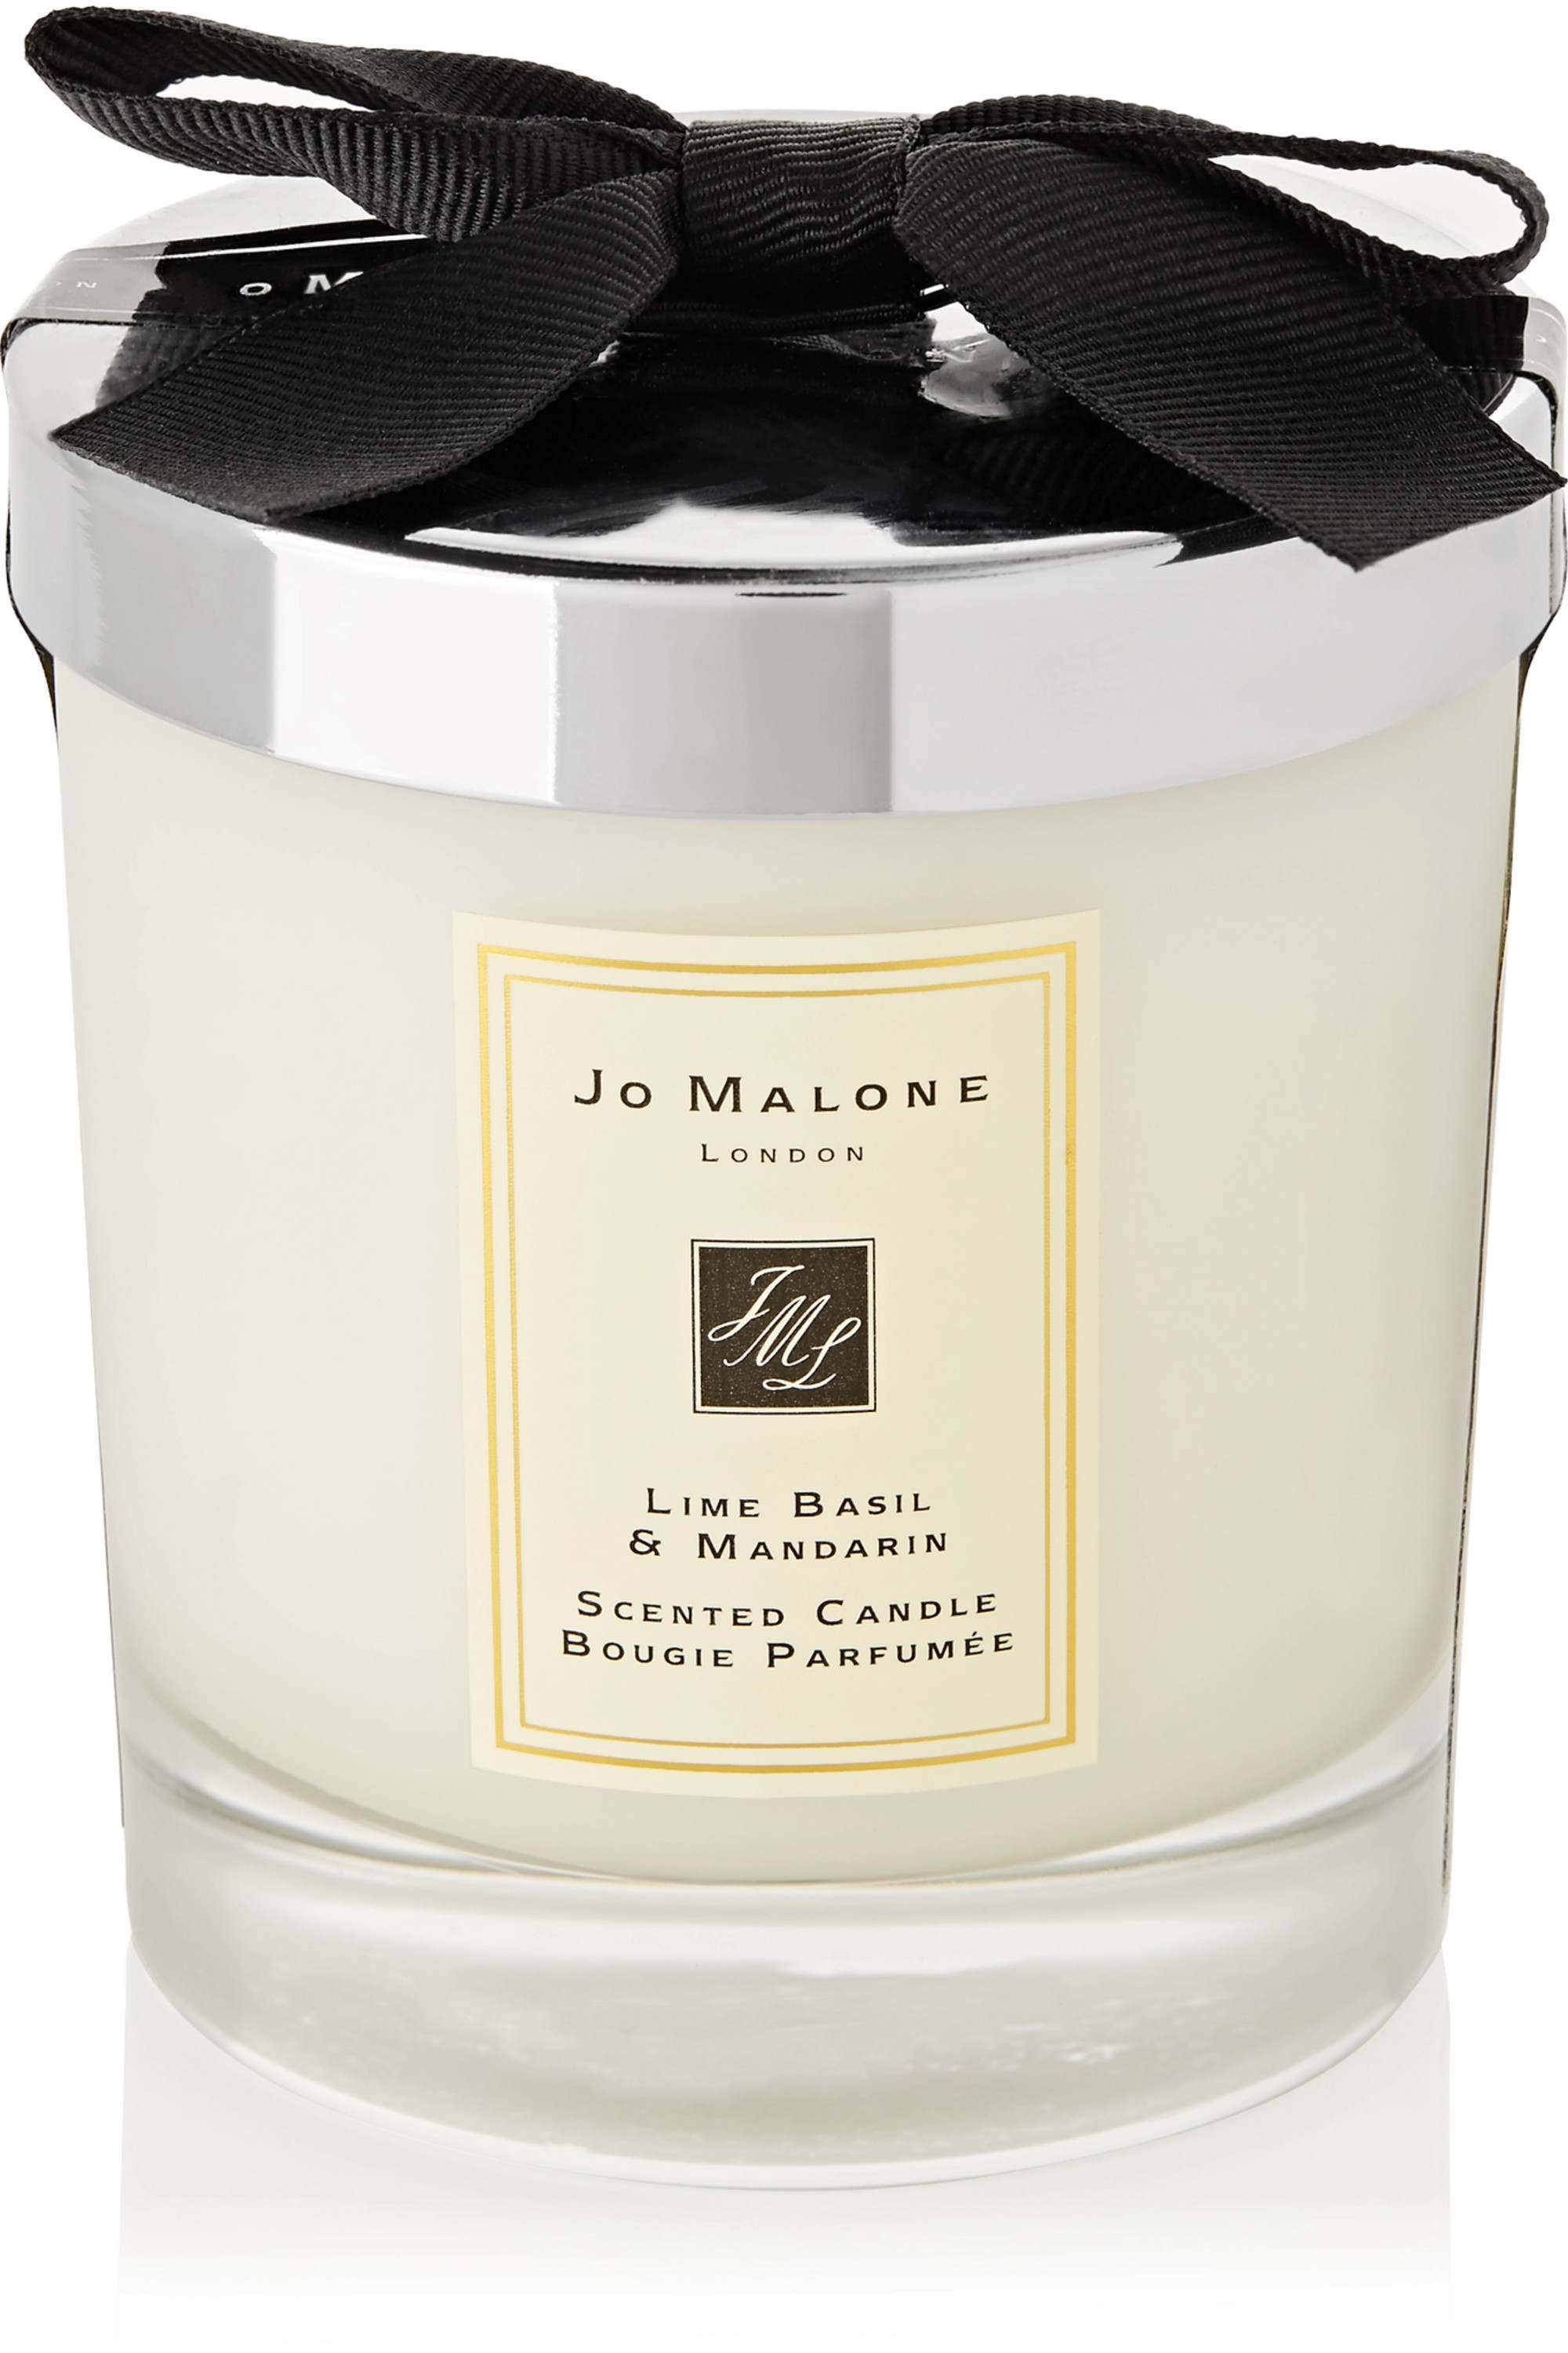 Jo Malone London Lime Basil & Mandarin Scented Home Candle, 200g